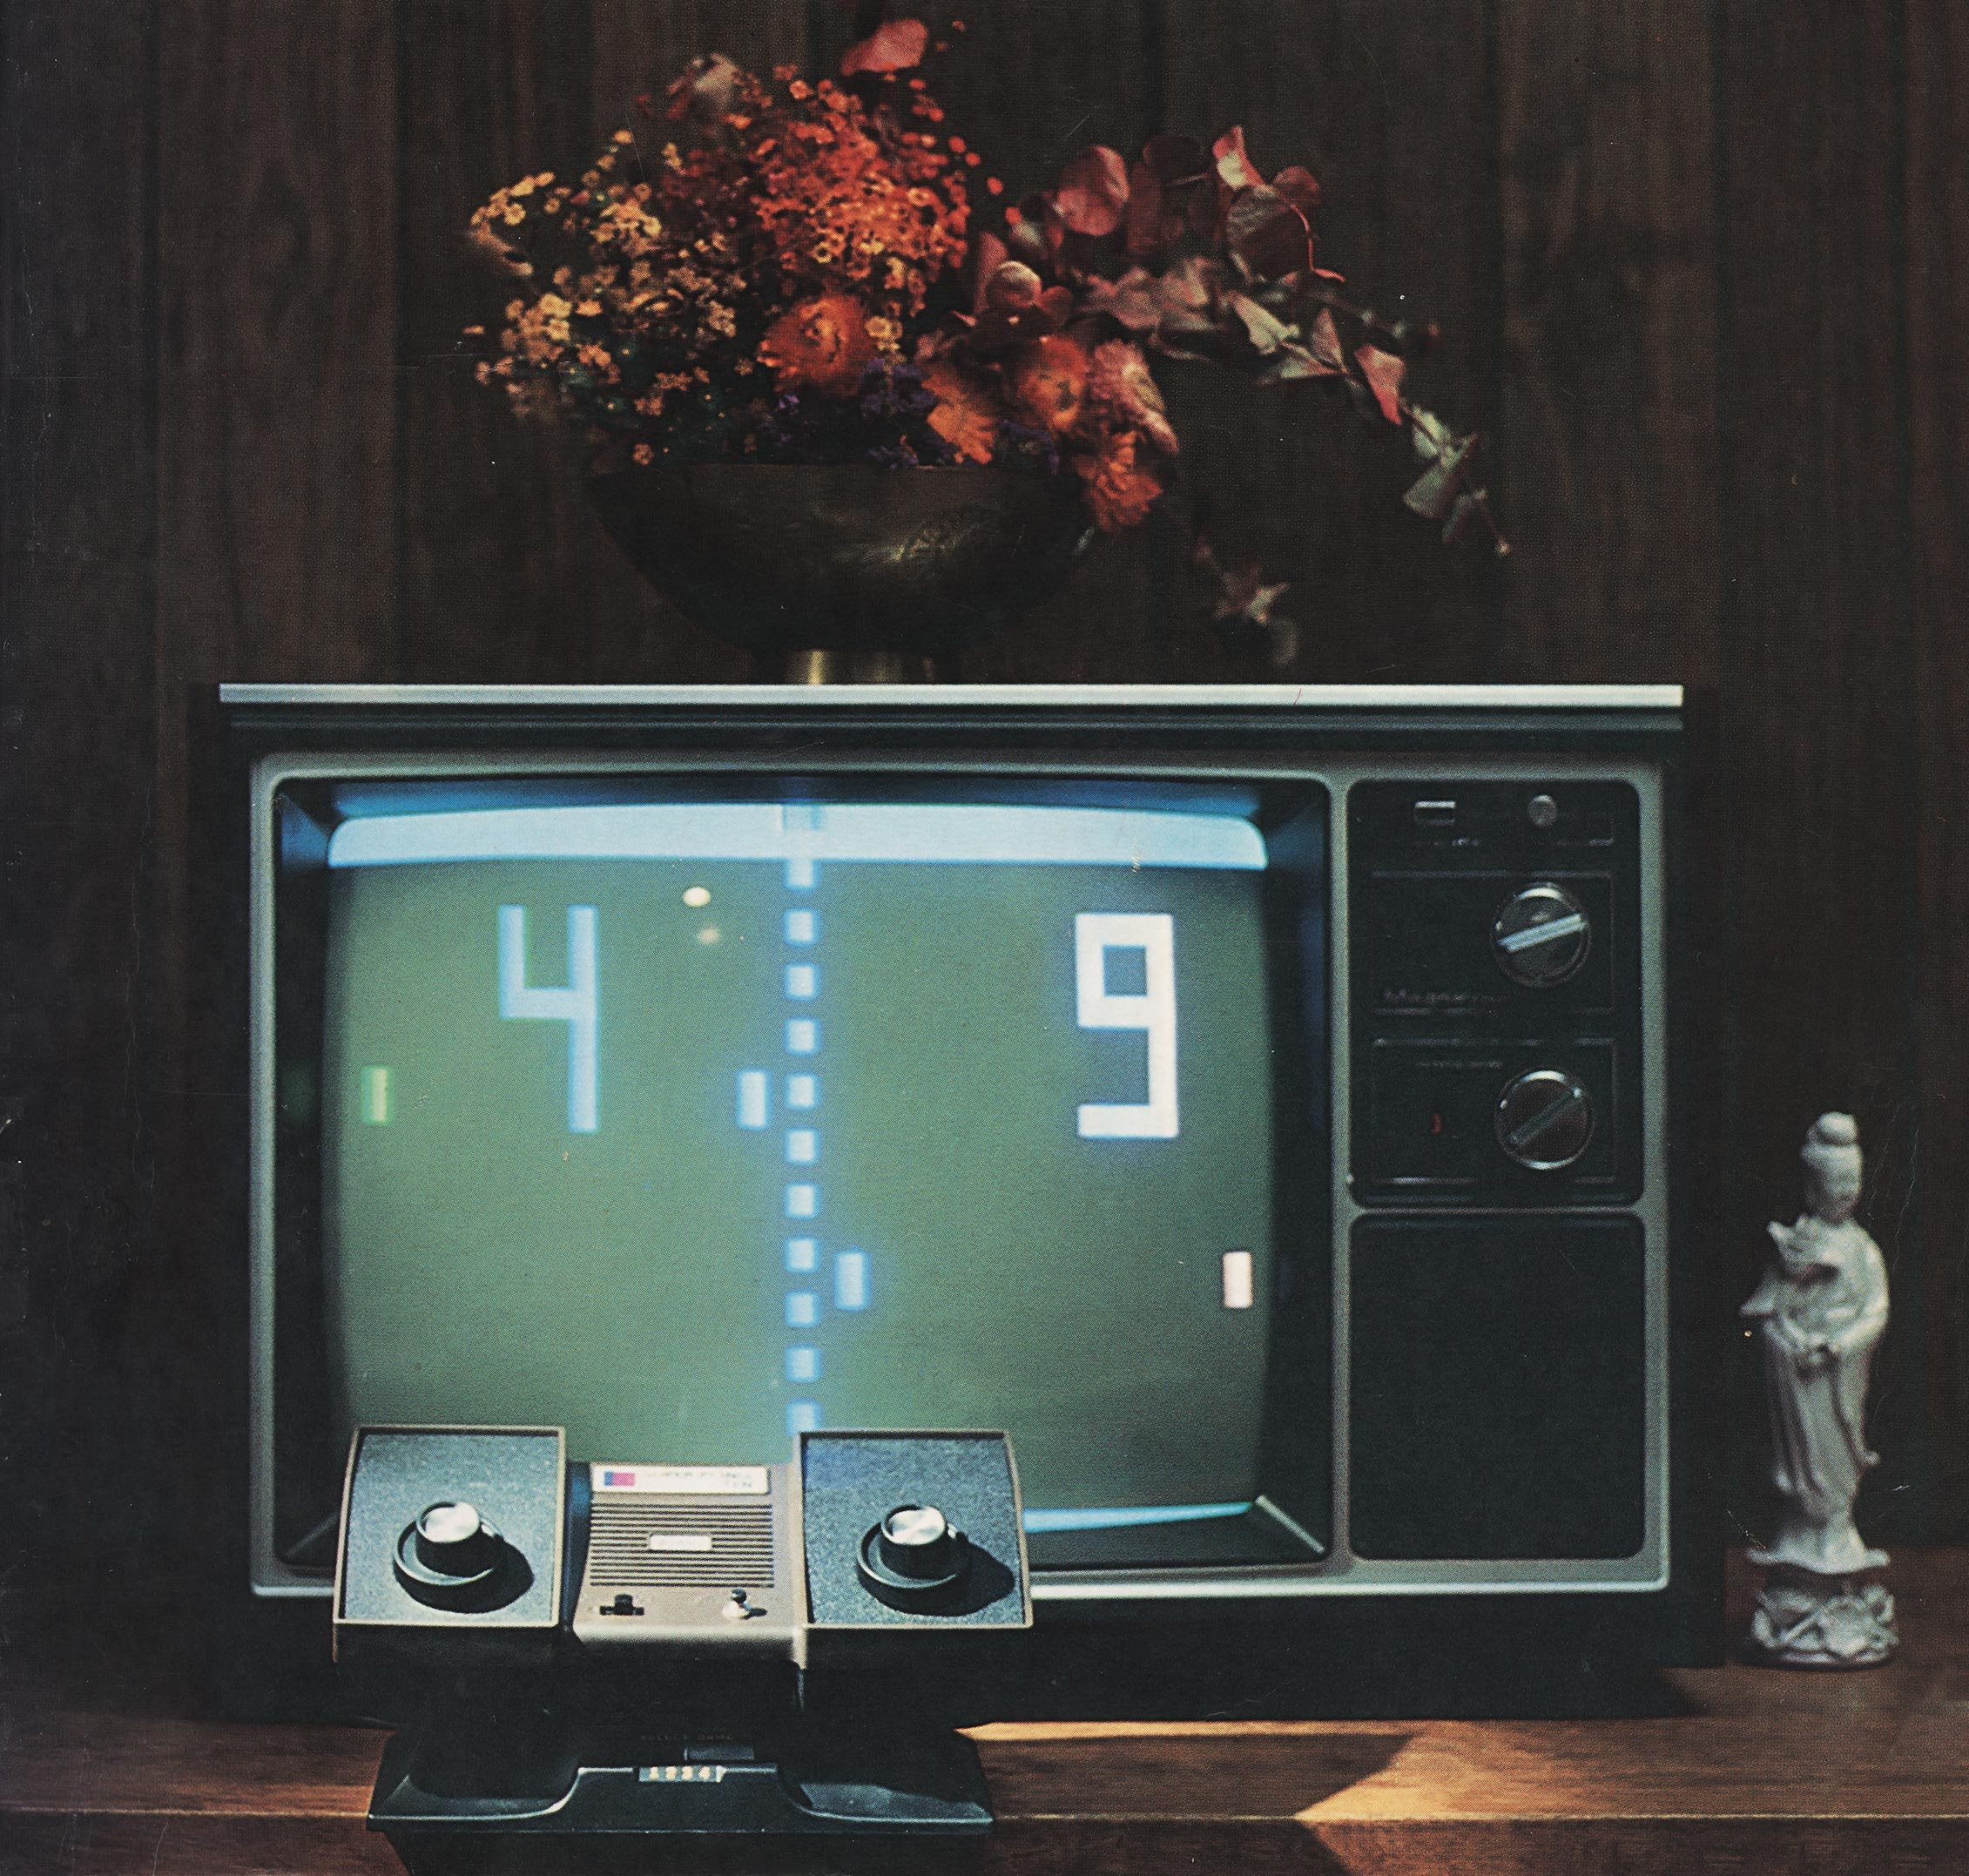 Super PONG, a home video game console by Atari